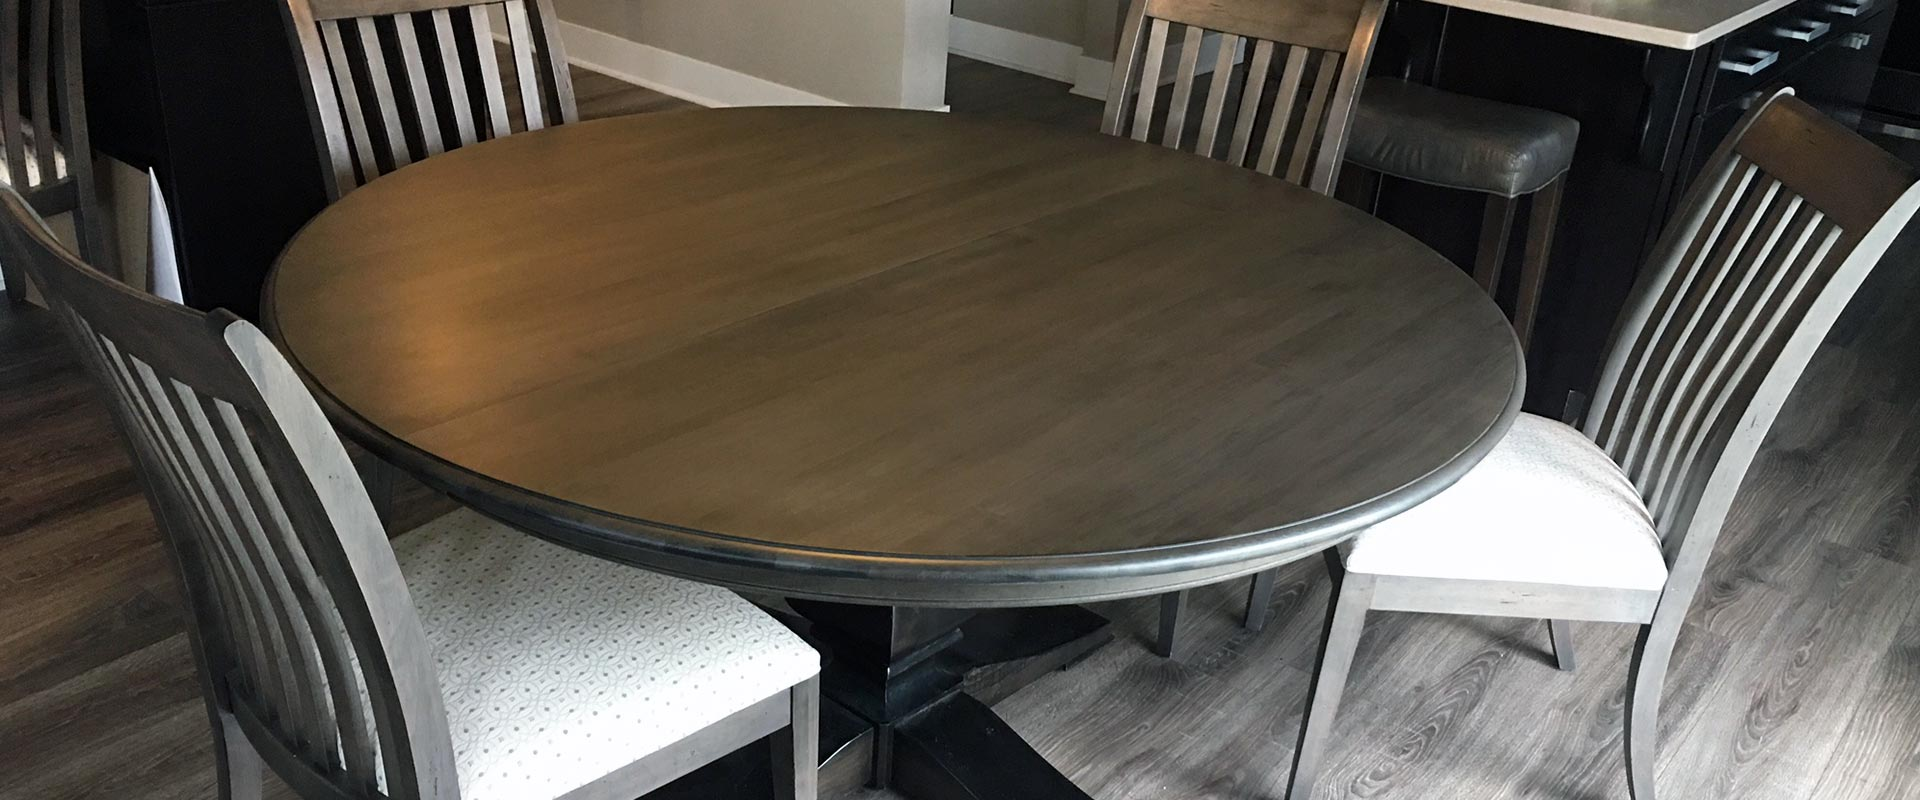 PFR-progressive-furniture-refinishing-grand-rapids-mi_slide1